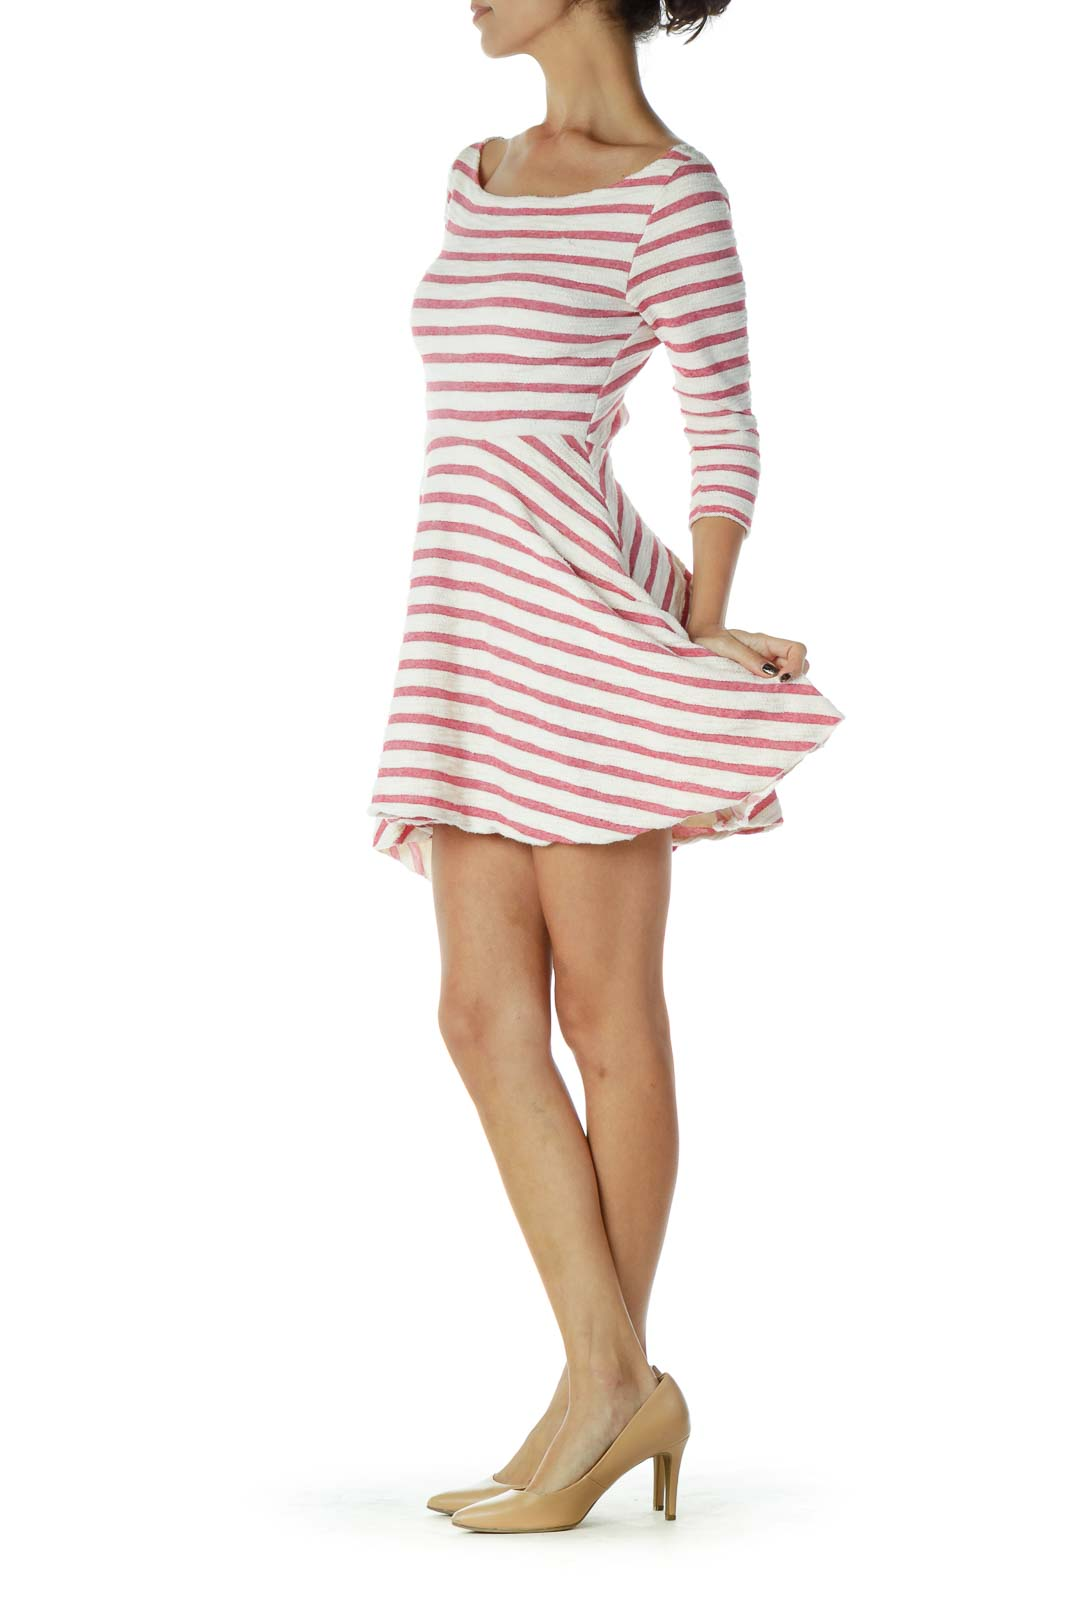 White Pink Striped Dress